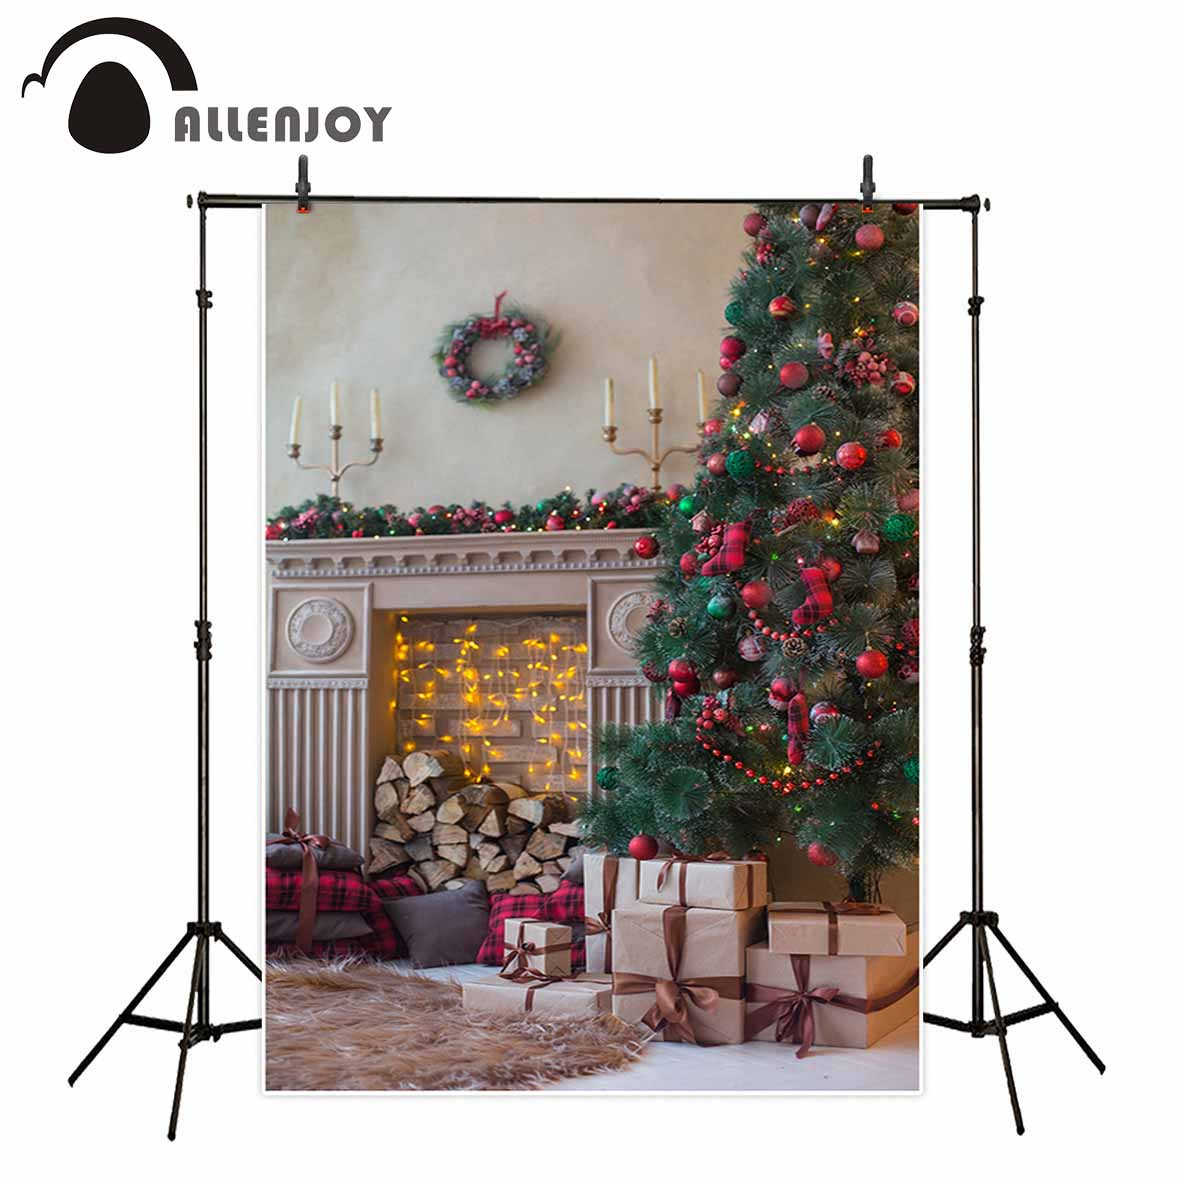 Allenjoy Modern warm Christmas decoration tree gift wreath candle fireplace wood carpet red ball backgrounds for photo studio christmas tree backdrop photography allenjoy wooden carpet fireplace xmas tree background photographic studio vinyl camera